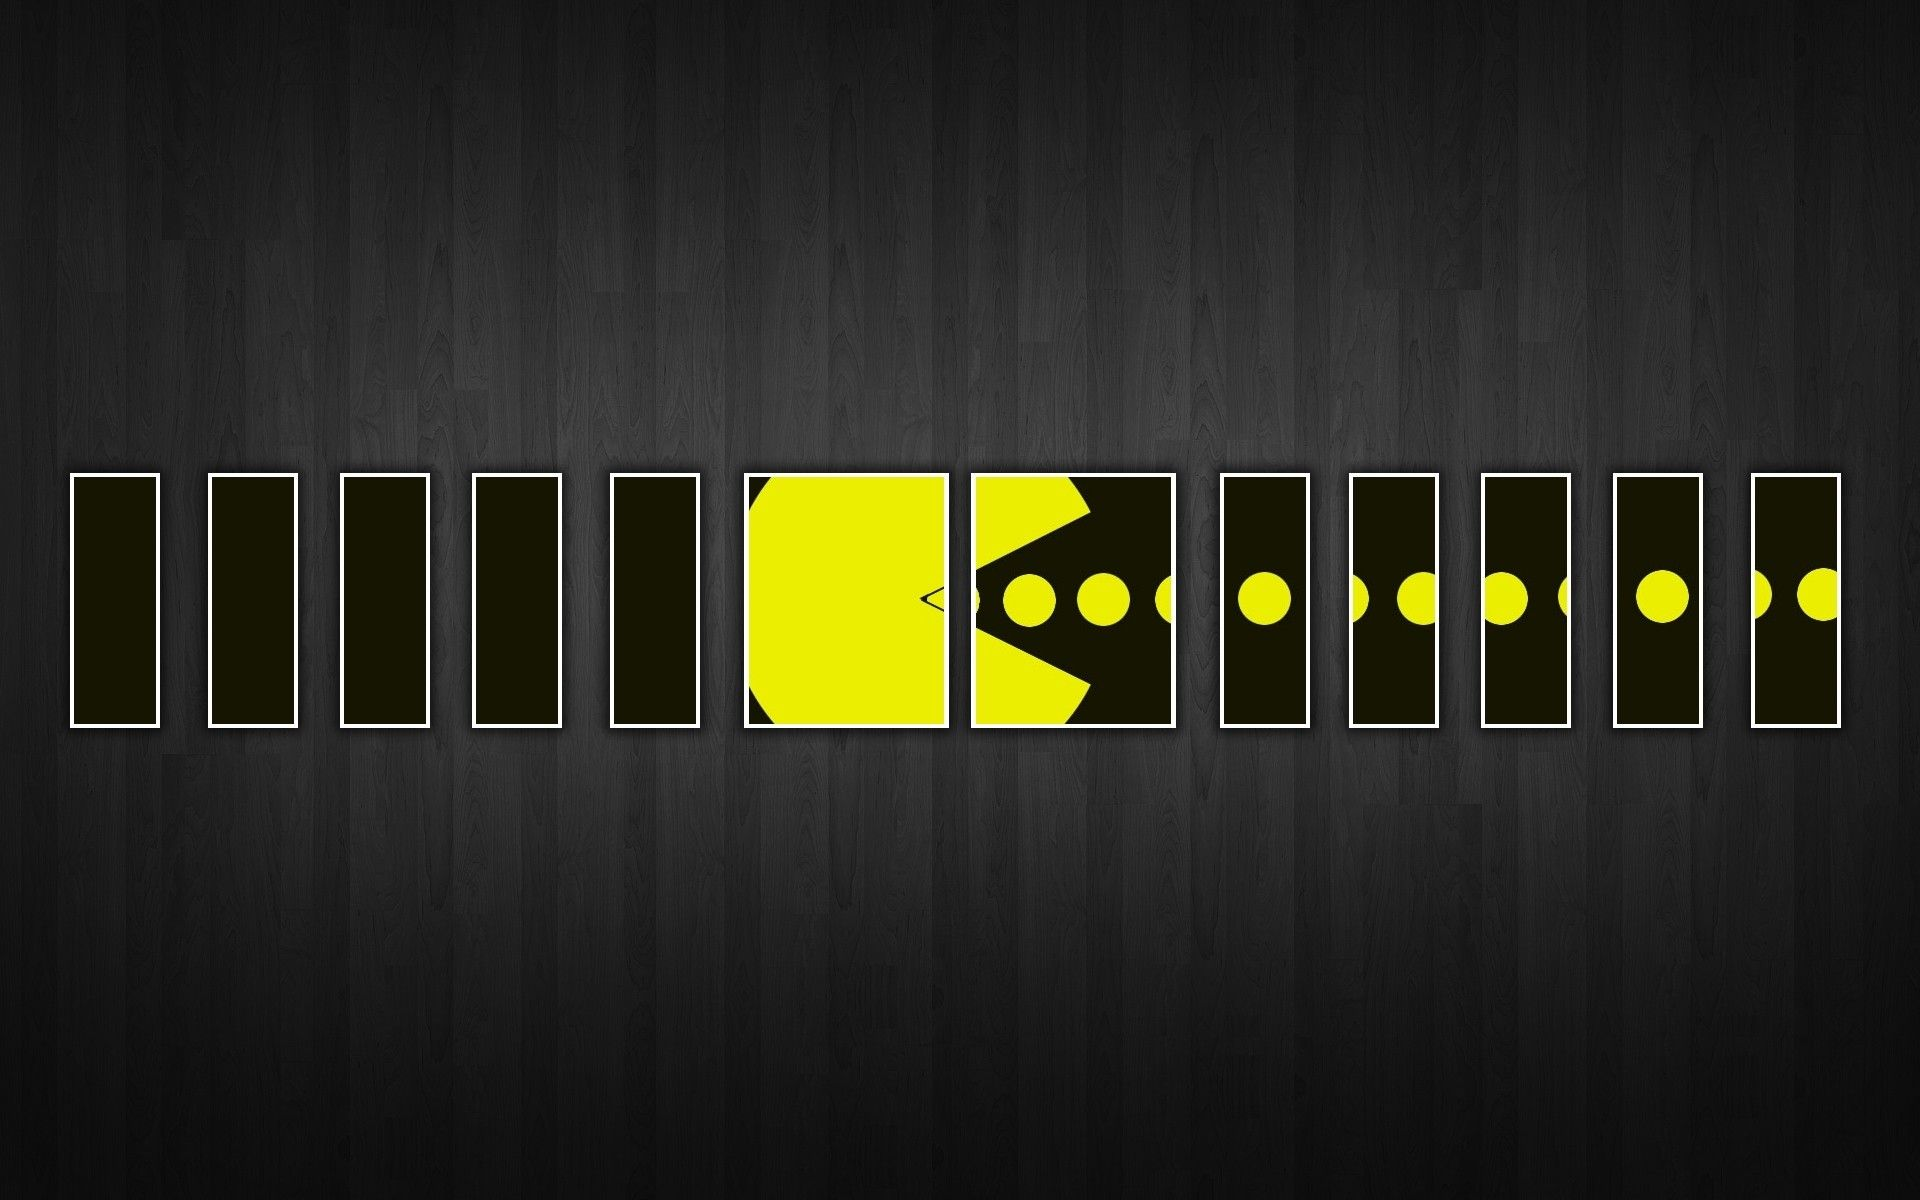 1920x1200 Games: Pac-Man Dual Monitor Background 1920x1200 for HD 16:9 High ...